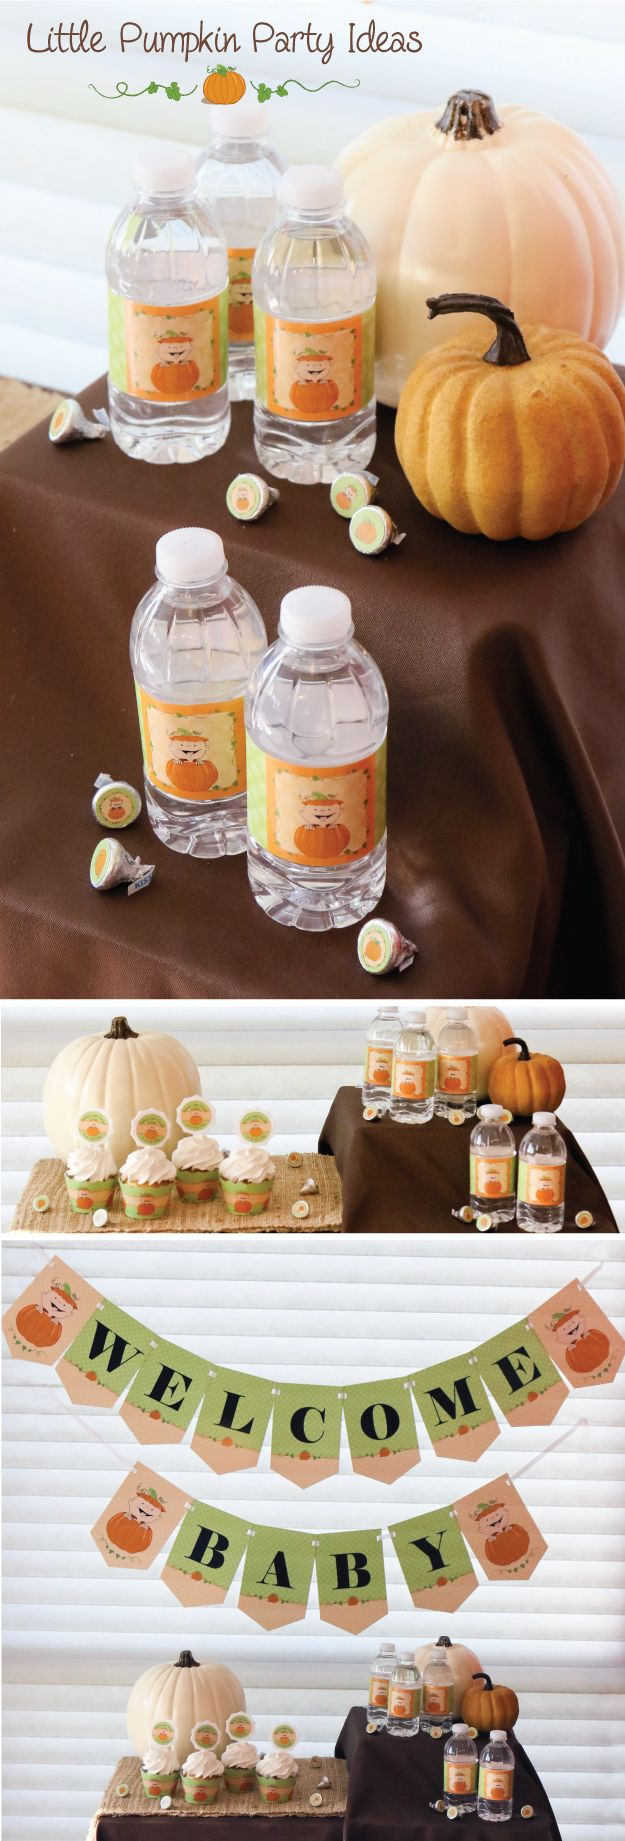 Little Pumpkin Baby Shower Ideas for Fall from BigDotOfHappiness.com